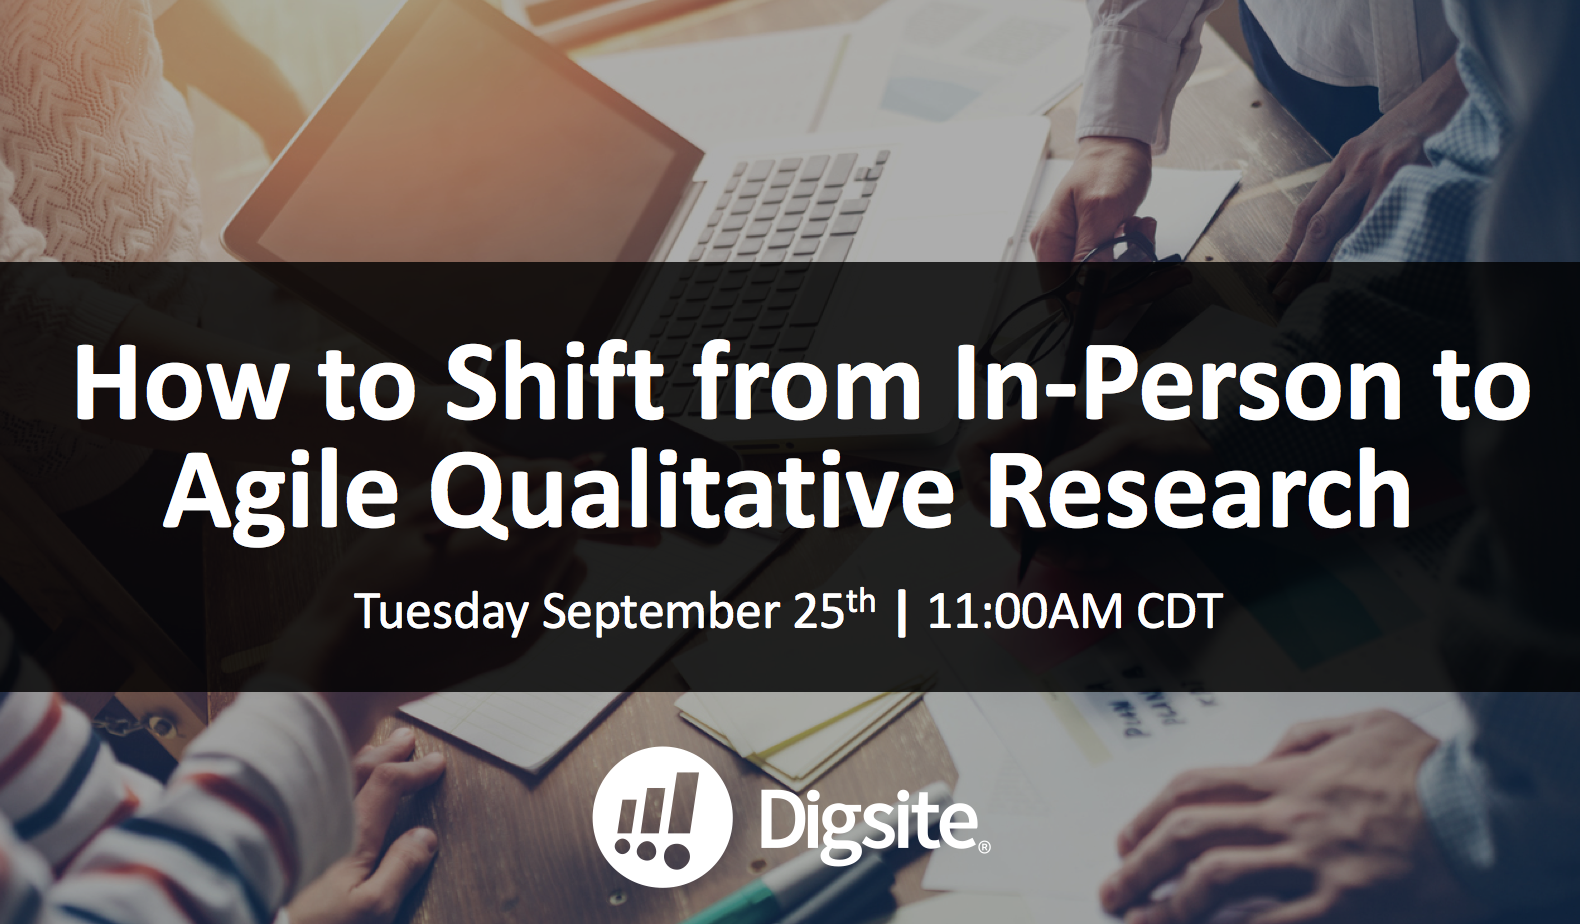 Digsite How to Shift from In-Person to Agile Qualitative Webinar